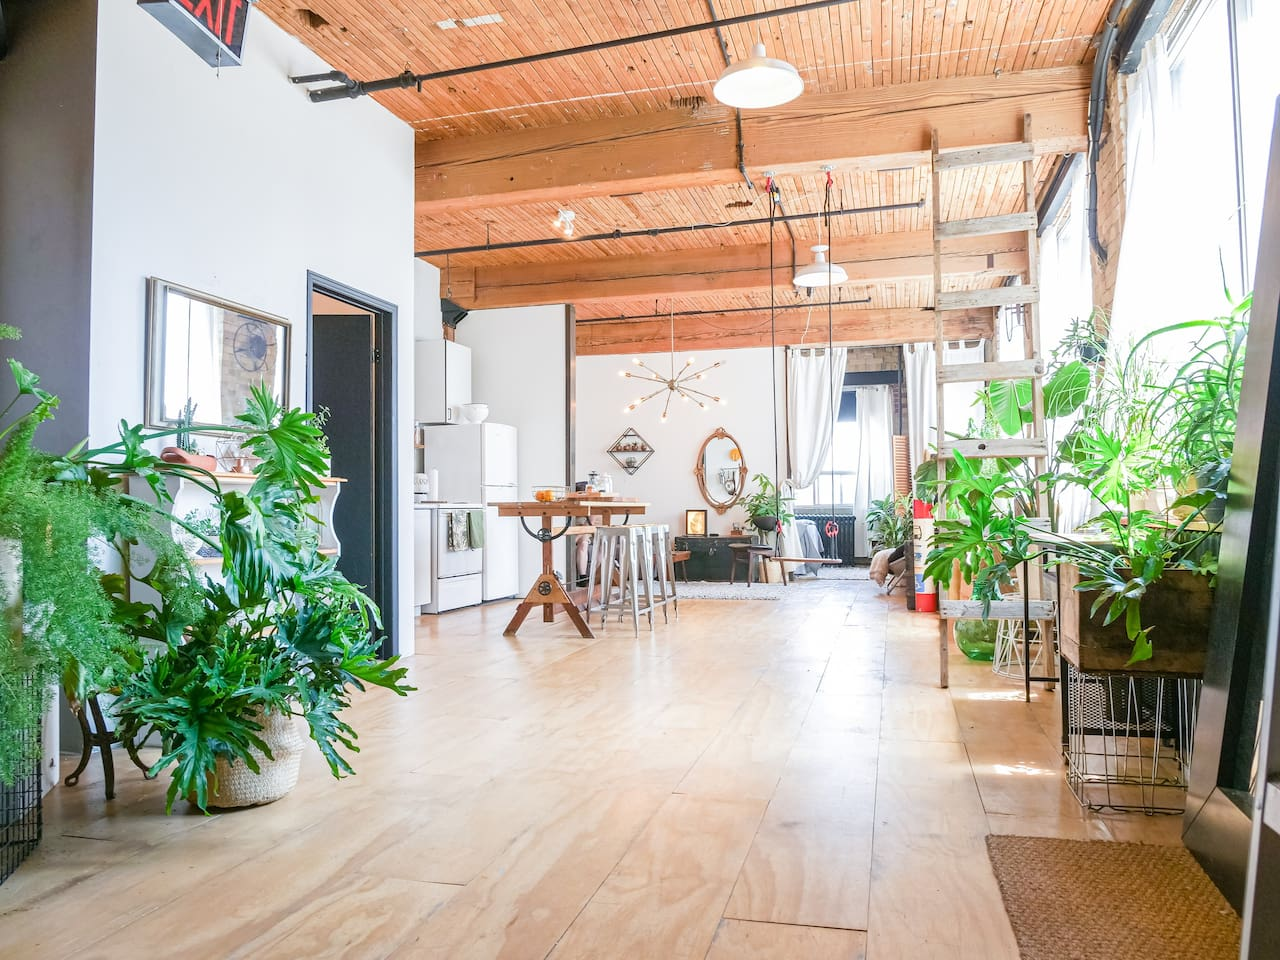 The brilliant sun-filled Plant Paradise Studio Loft, 10 mins from the Distillery District